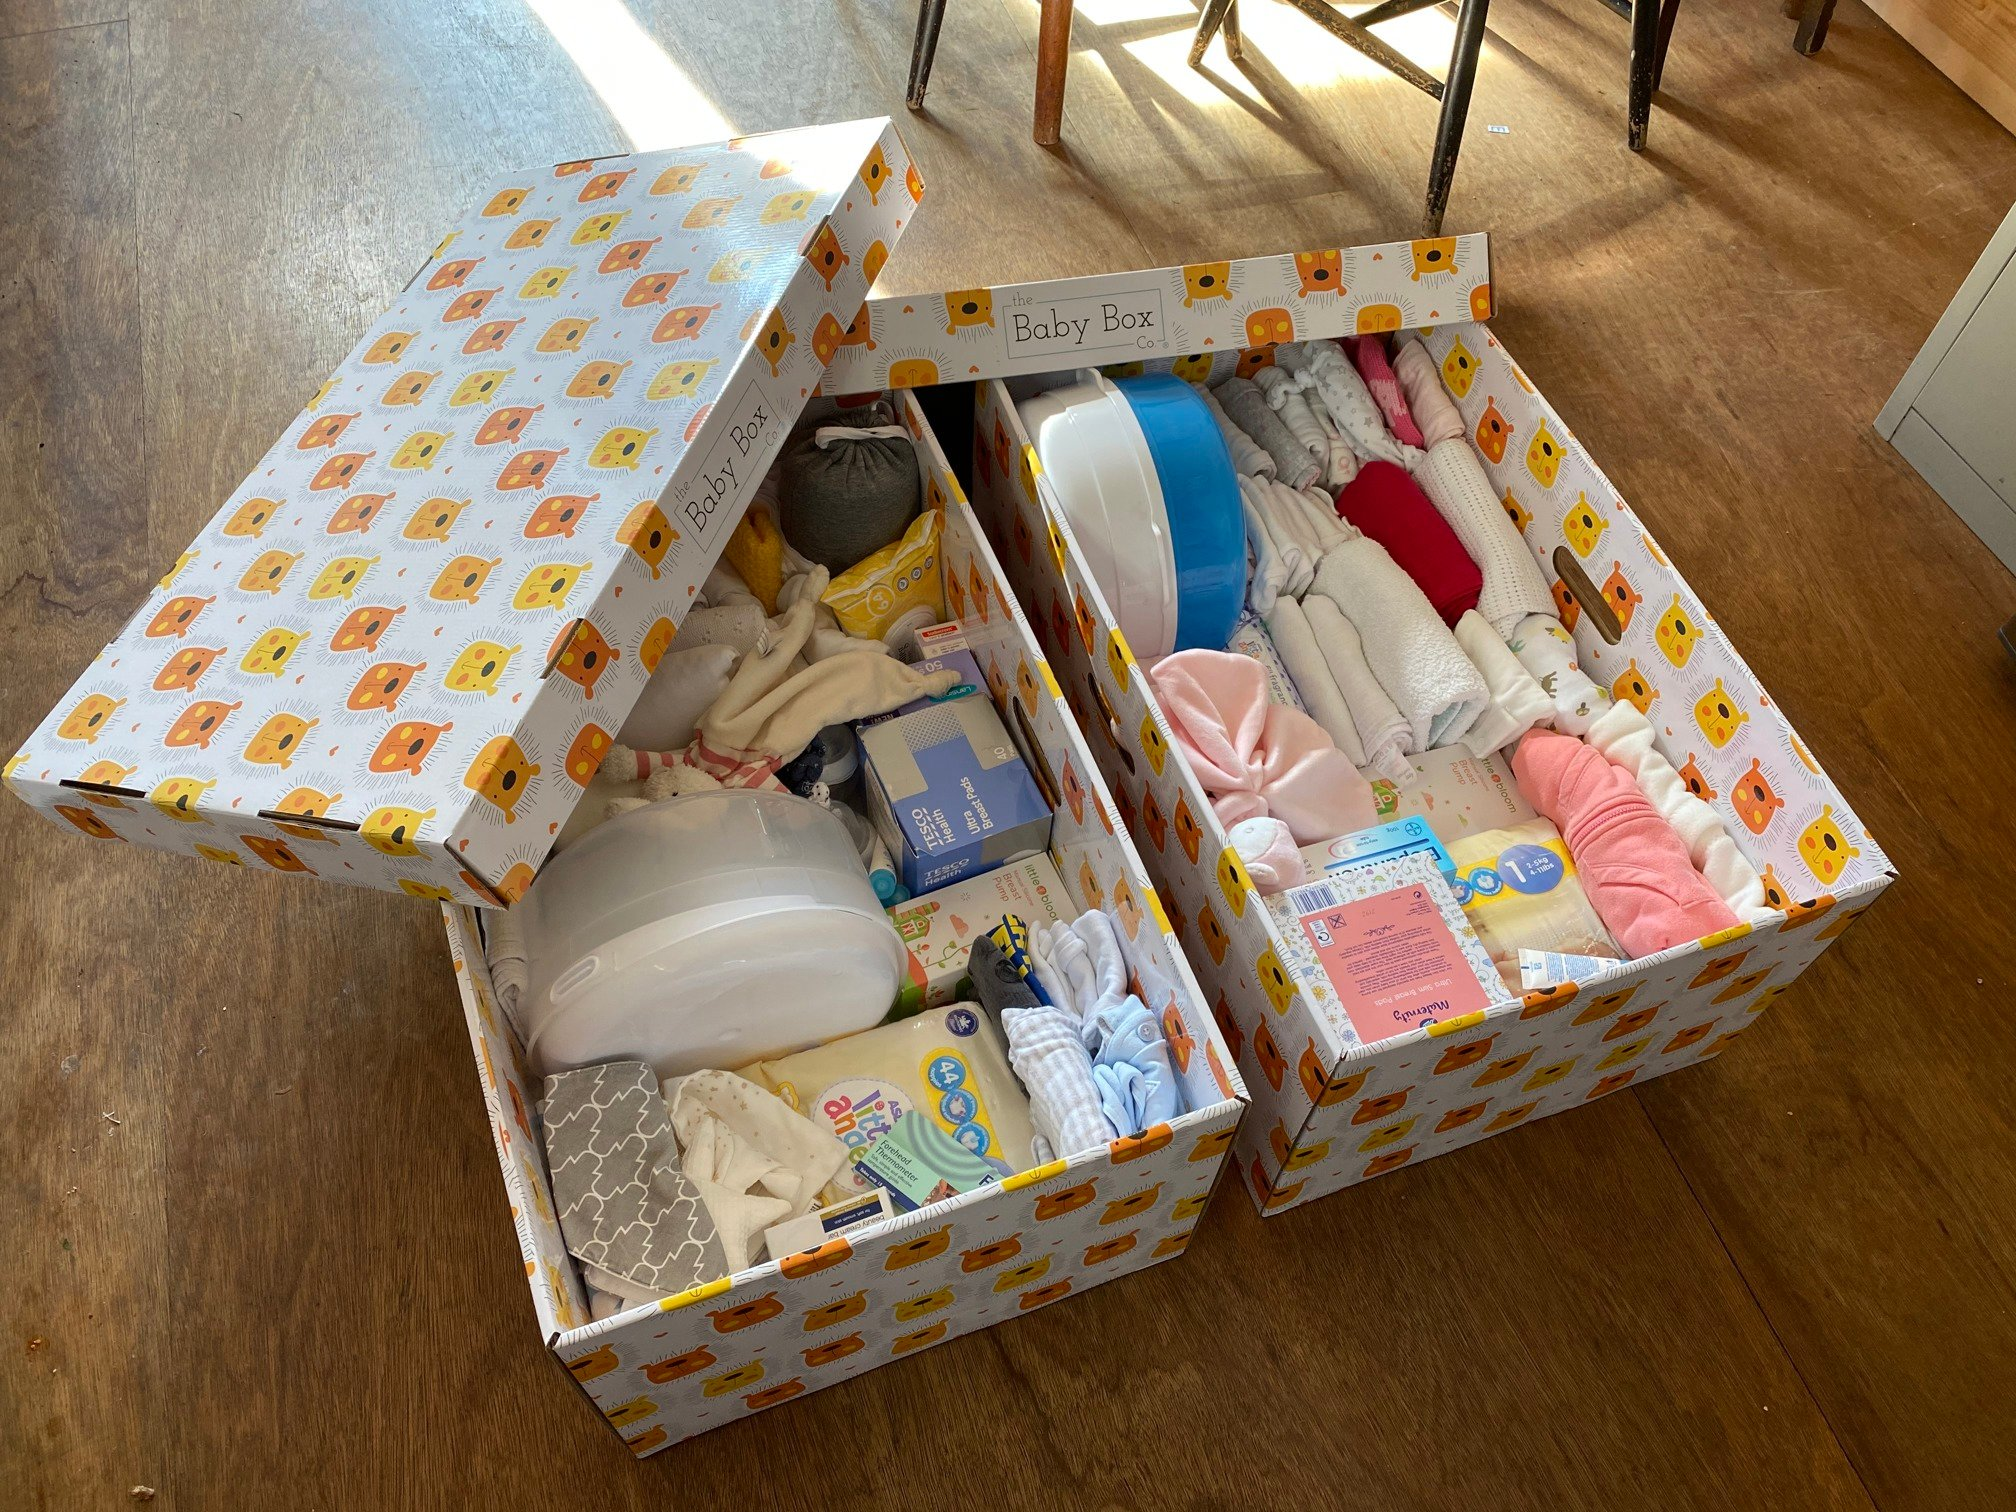 Pram Depot Baby Box showing contents